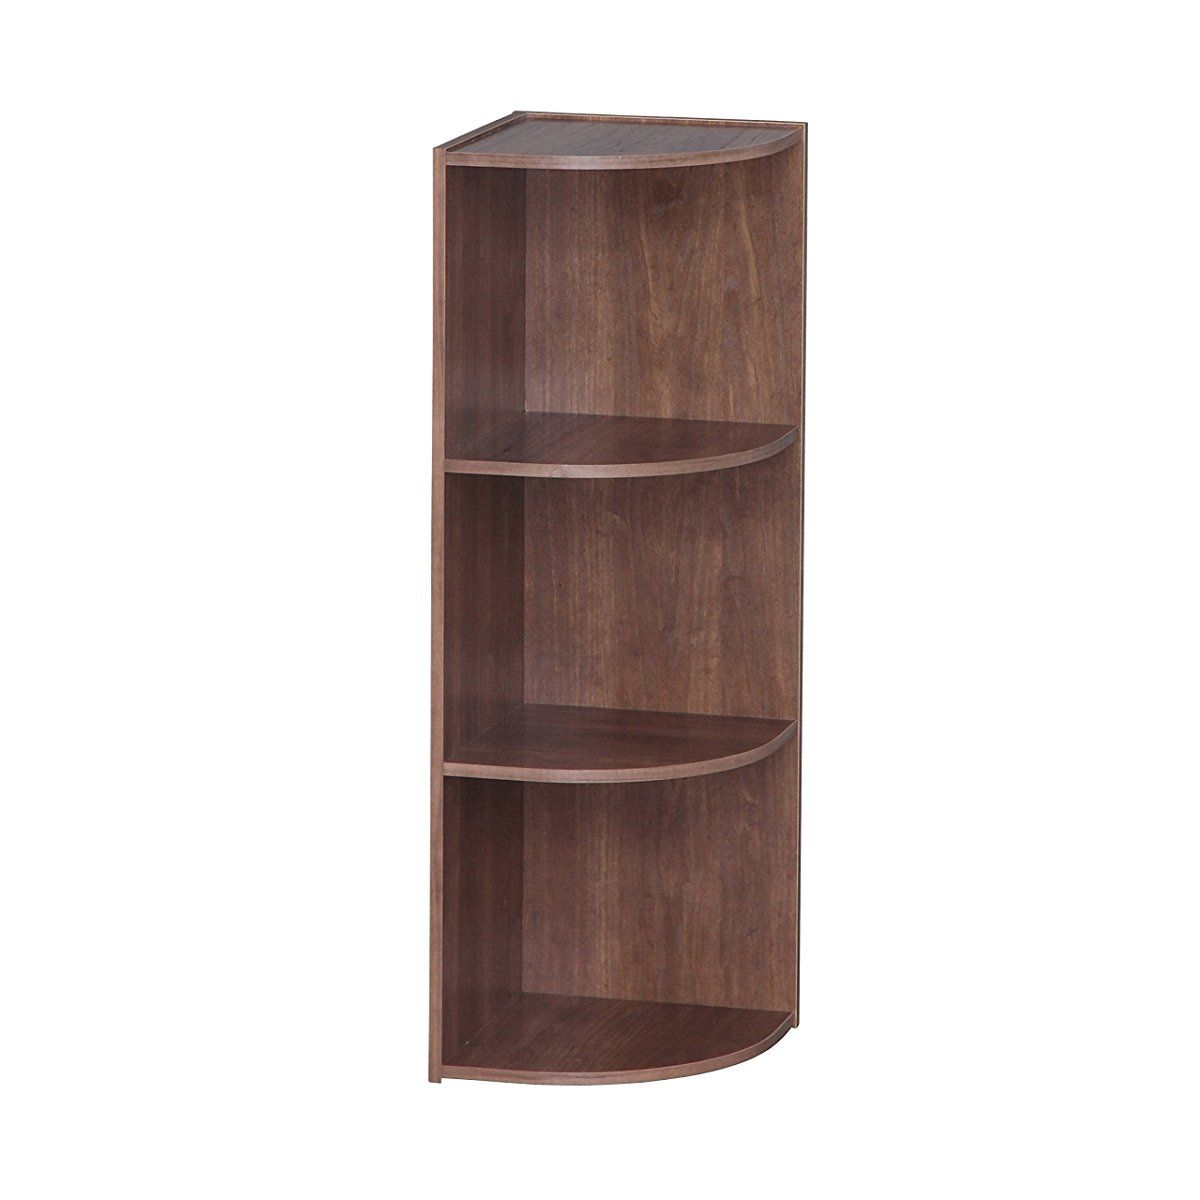 Iris 3 Tier Corner Curved Shelf Organizer Brown Shelves Freestanding Shelving Units Shelf Organization